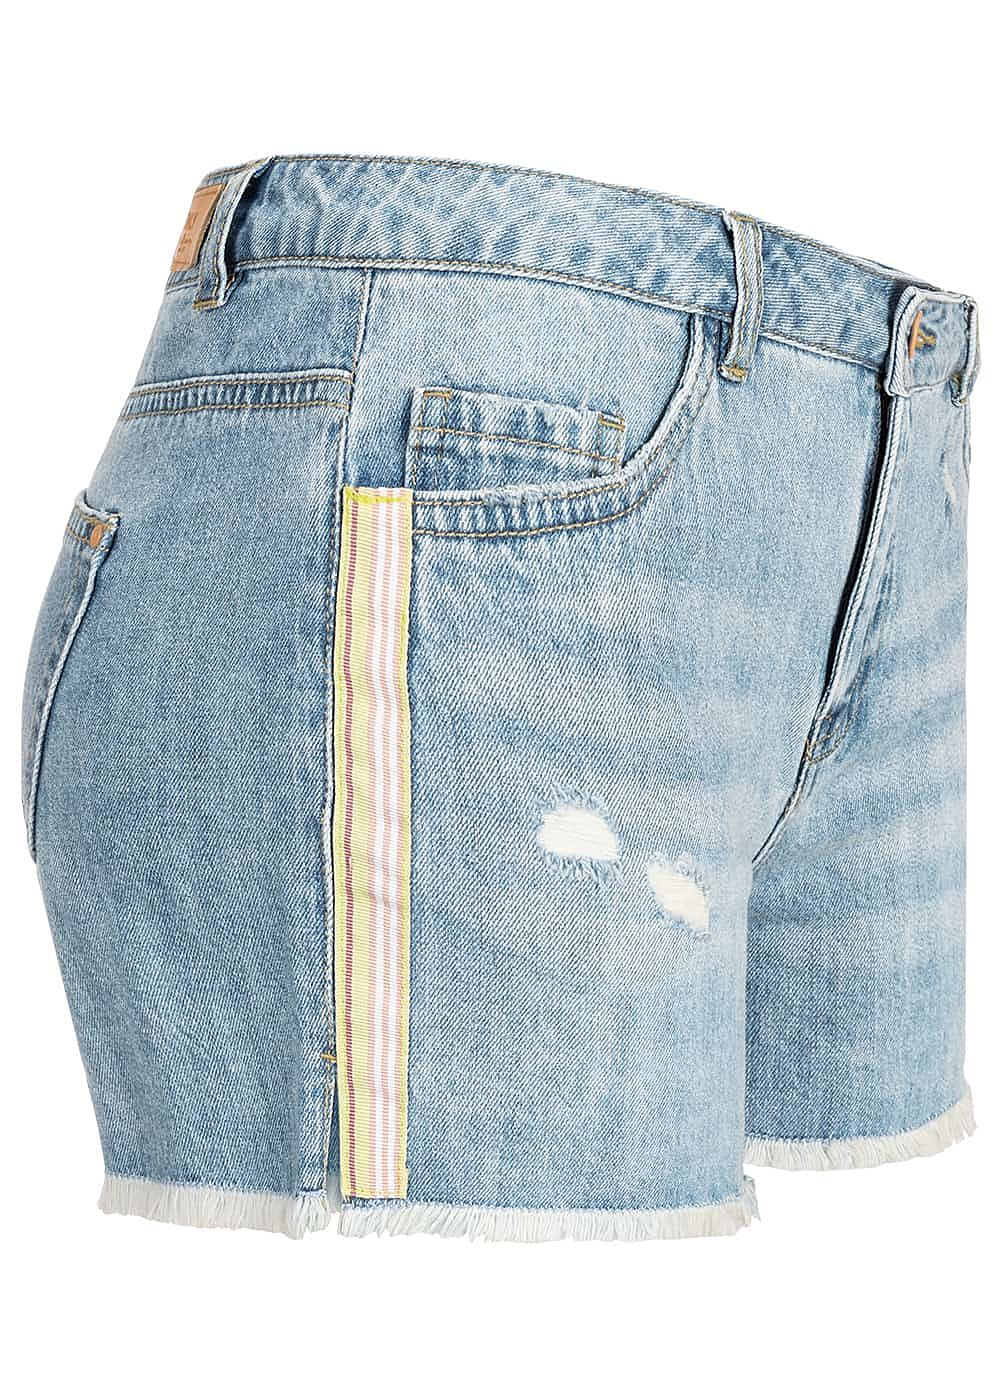 ONLY Damen Denim Shorts Frays Contrasting Stripes medium blau denim - Art.-Nr.: 19041568